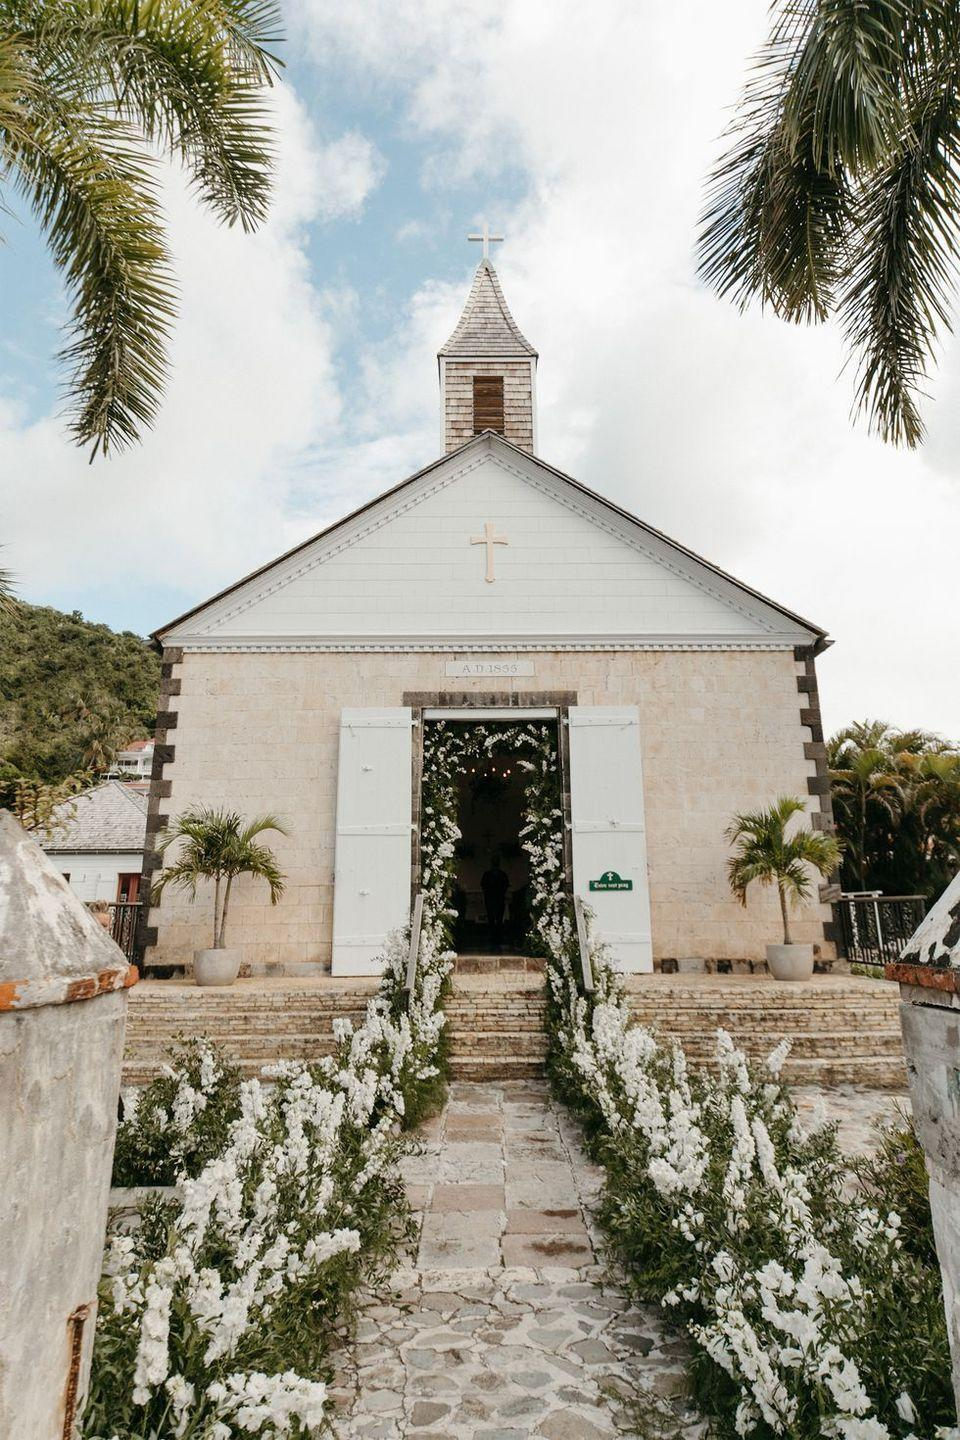 """<p>An aisle looks like it goes on for days when it has a direct correlation with the other arrangements and archways in the space, from the entry of the church to your <a href=""""https://www.harpersbazaar.com/wedding/planning/g30031551/wedding-arch-ideas/"""" rel=""""nofollow noopener"""" target=""""_blank"""" data-ylk=""""slk:wedding arch"""" class=""""link rapid-noclick-resp"""">wedding arch</a> or altar. That continuity guides guests' eyes throughout the space, and exudes abundance without feeling frivolous. This look transforms your ceremony space by drawing the eye from one moment to the next. Trust us: there's nothing more romantic than a far-as-the-eye-can-see aisle, especially when it's lined with gestural blooms and wispy grasses.</p><p>Pictured: <a href=""""https://www.harpersbazaar.com/wedding/photos/a29846496/devon-windsor-wedding/"""" rel=""""nofollow noopener"""" target=""""_blank"""" data-ylk=""""slk:Devon Windsor and Johnny Barbara's wedding in St. Barths"""" class=""""link rapid-noclick-resp"""">Devon Windsor and Johnny Barbara's wedding in St. Barths</a>. Planning by <a href=""""https://mindyweiss.com/"""" rel=""""nofollow noopener"""" target=""""_blank"""" data-ylk=""""slk:Mindy Weiss"""" class=""""link rapid-noclick-resp"""">Mindy Weiss</a>; Floral design by <a href=""""https://www.bowsandarrowsflowers.com/#!/H_O_M_E_"""" rel=""""nofollow noopener"""" target=""""_blank"""" data-ylk=""""slk:Bows & Arrows"""" class=""""link rapid-noclick-resp"""">Bows & Arrows</a>.</p>"""